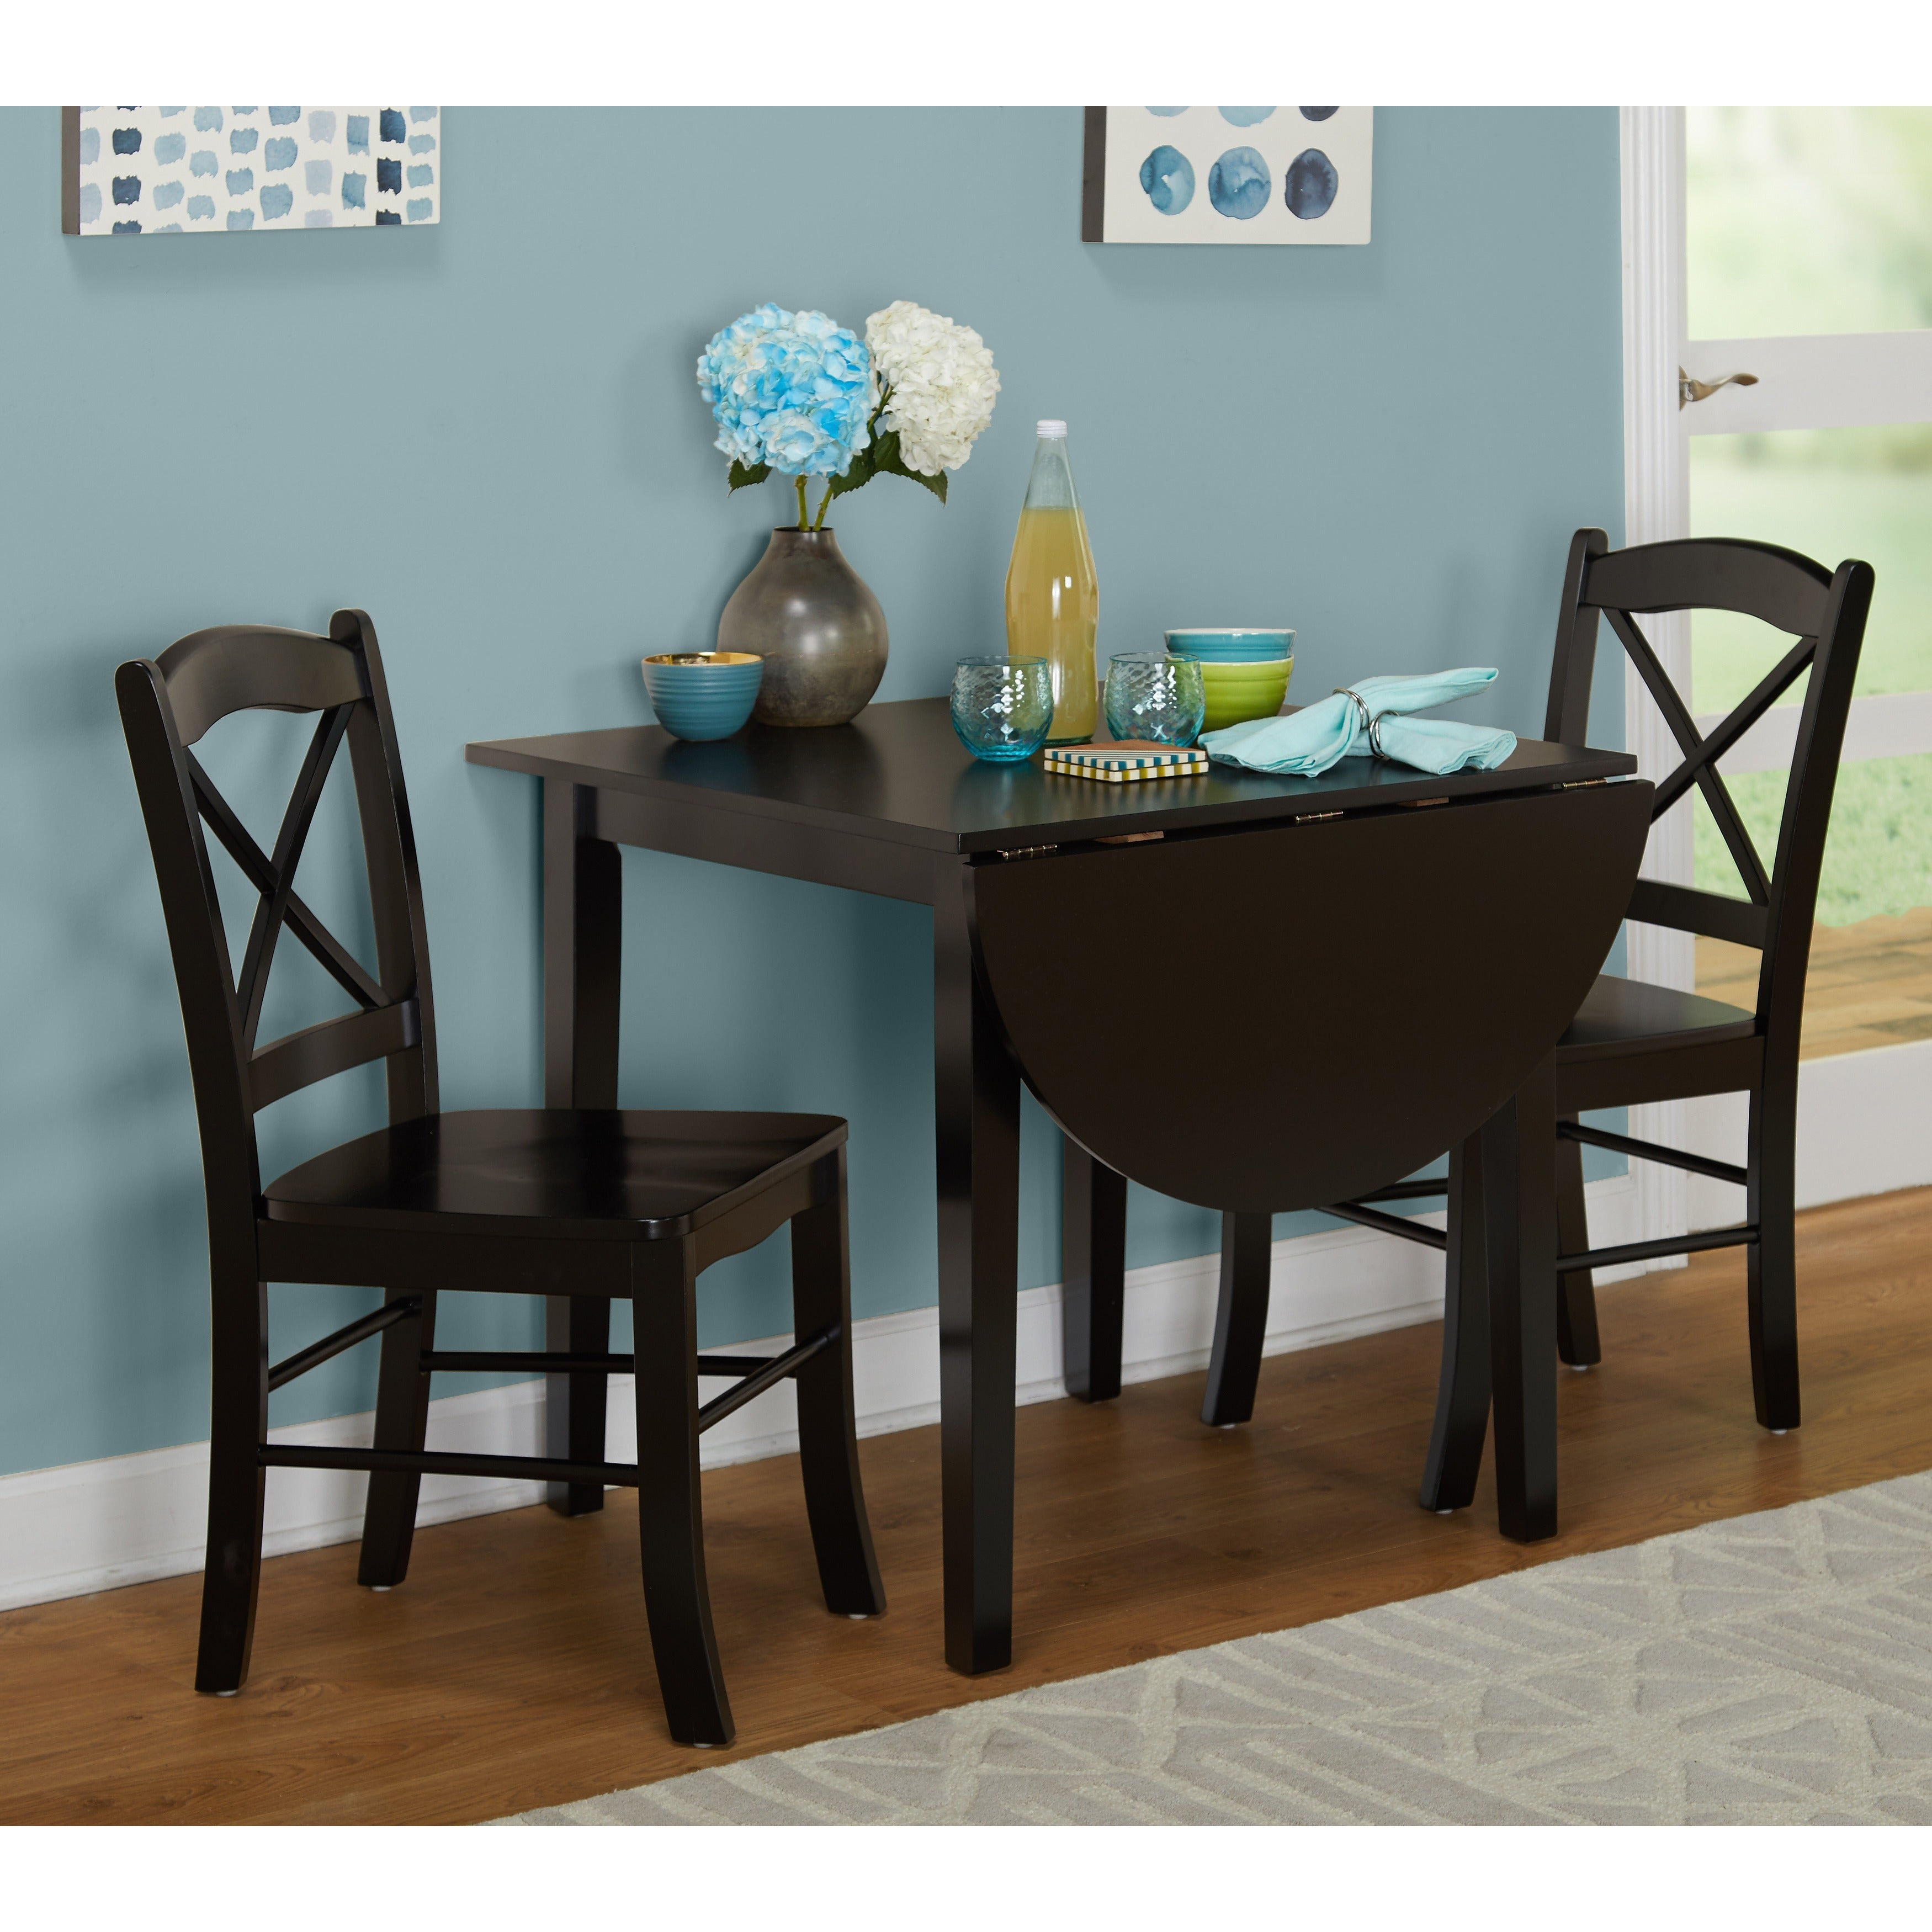 Buy 3 Piece Sets Kitchen & Dining Room Sets Online At Overstock Regarding 2017 Rossiter 3 Piece Dining Sets (Image 4 of 20)